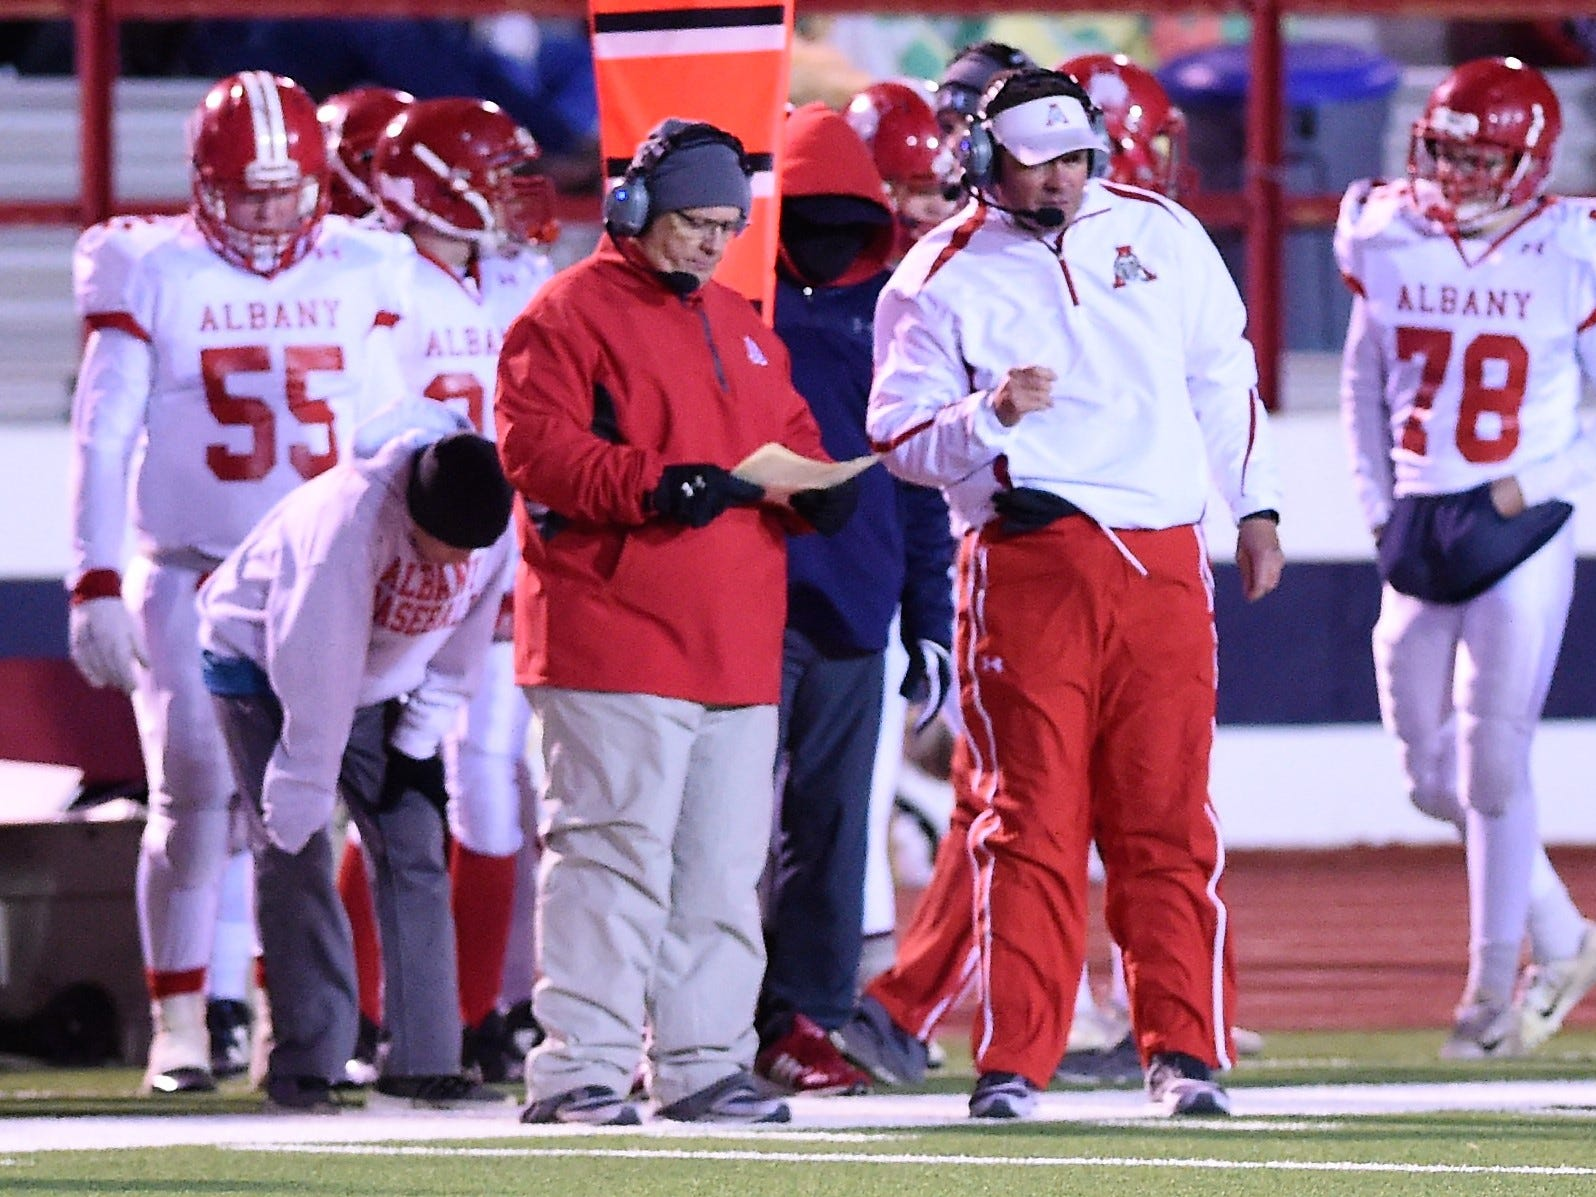 Albany head coach Denney Faith looks at his play sheet against Gruver in the Class 2A Division II state semifinal at Sherwood Memorial Bulldog Stadium in Plainview on Thursday, Dec. 13, 2018.